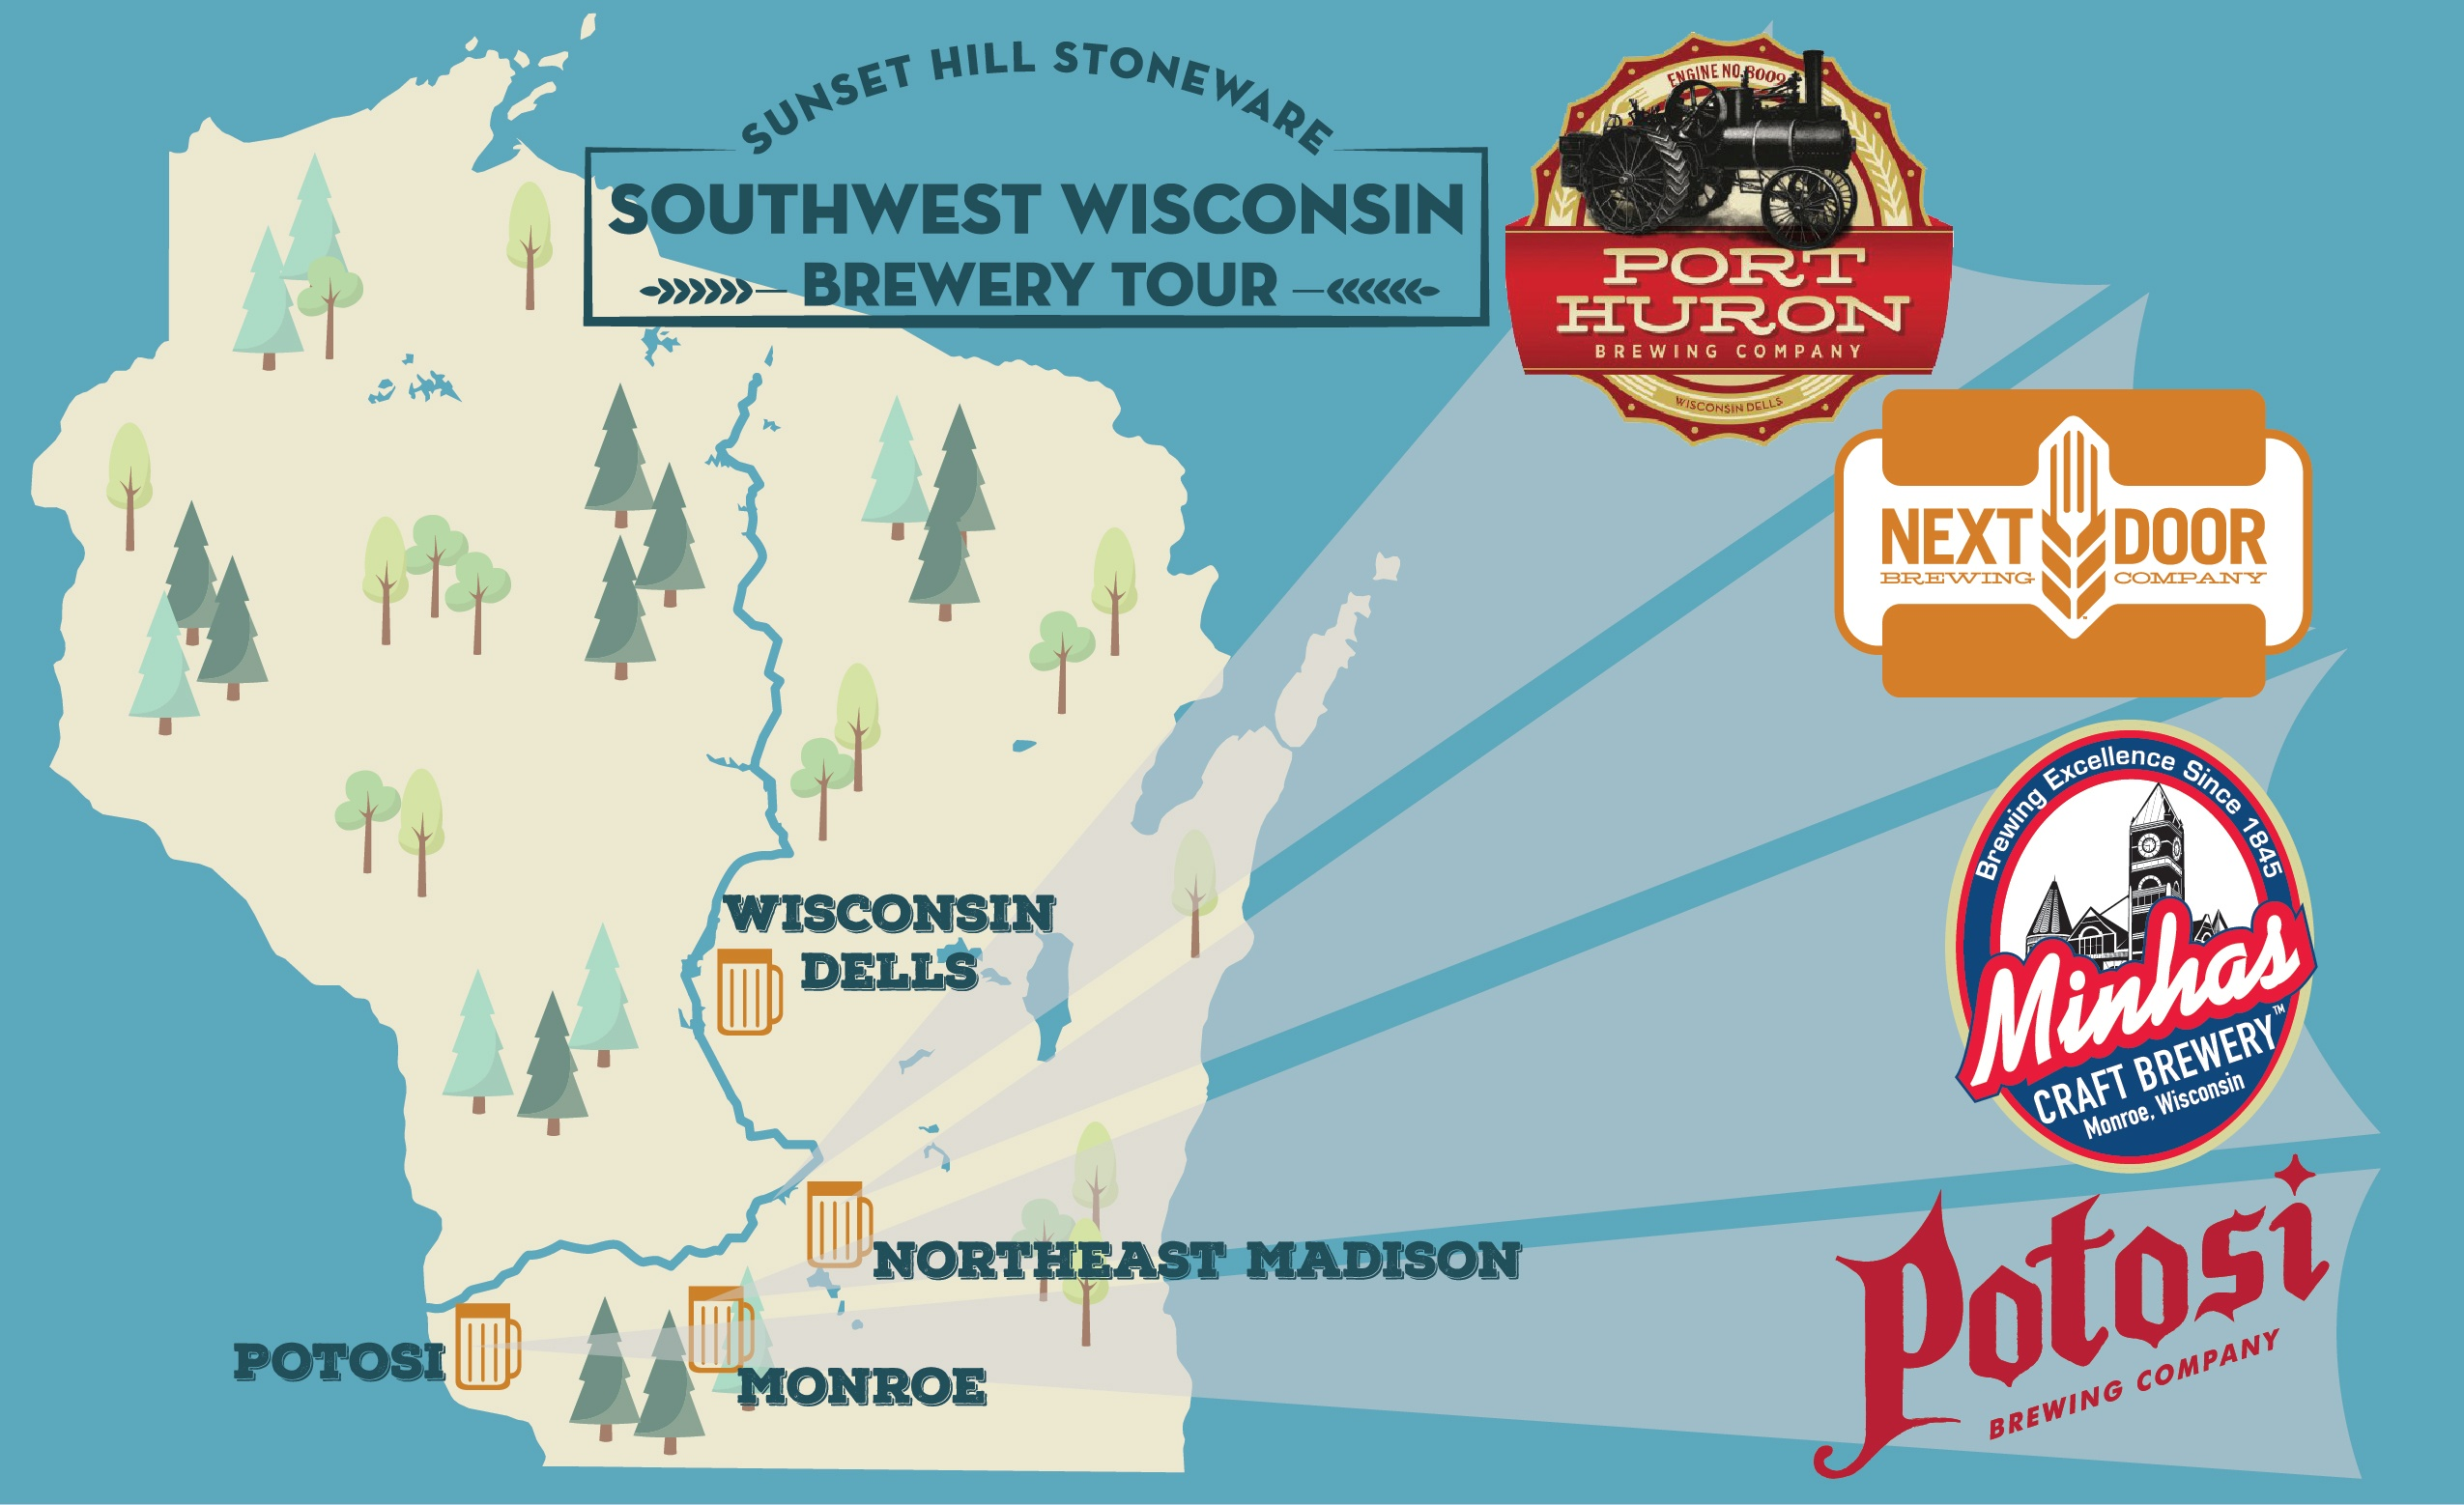 Brew Tour: Find Sunset Hill Stoneware in Southwest Wisconsin